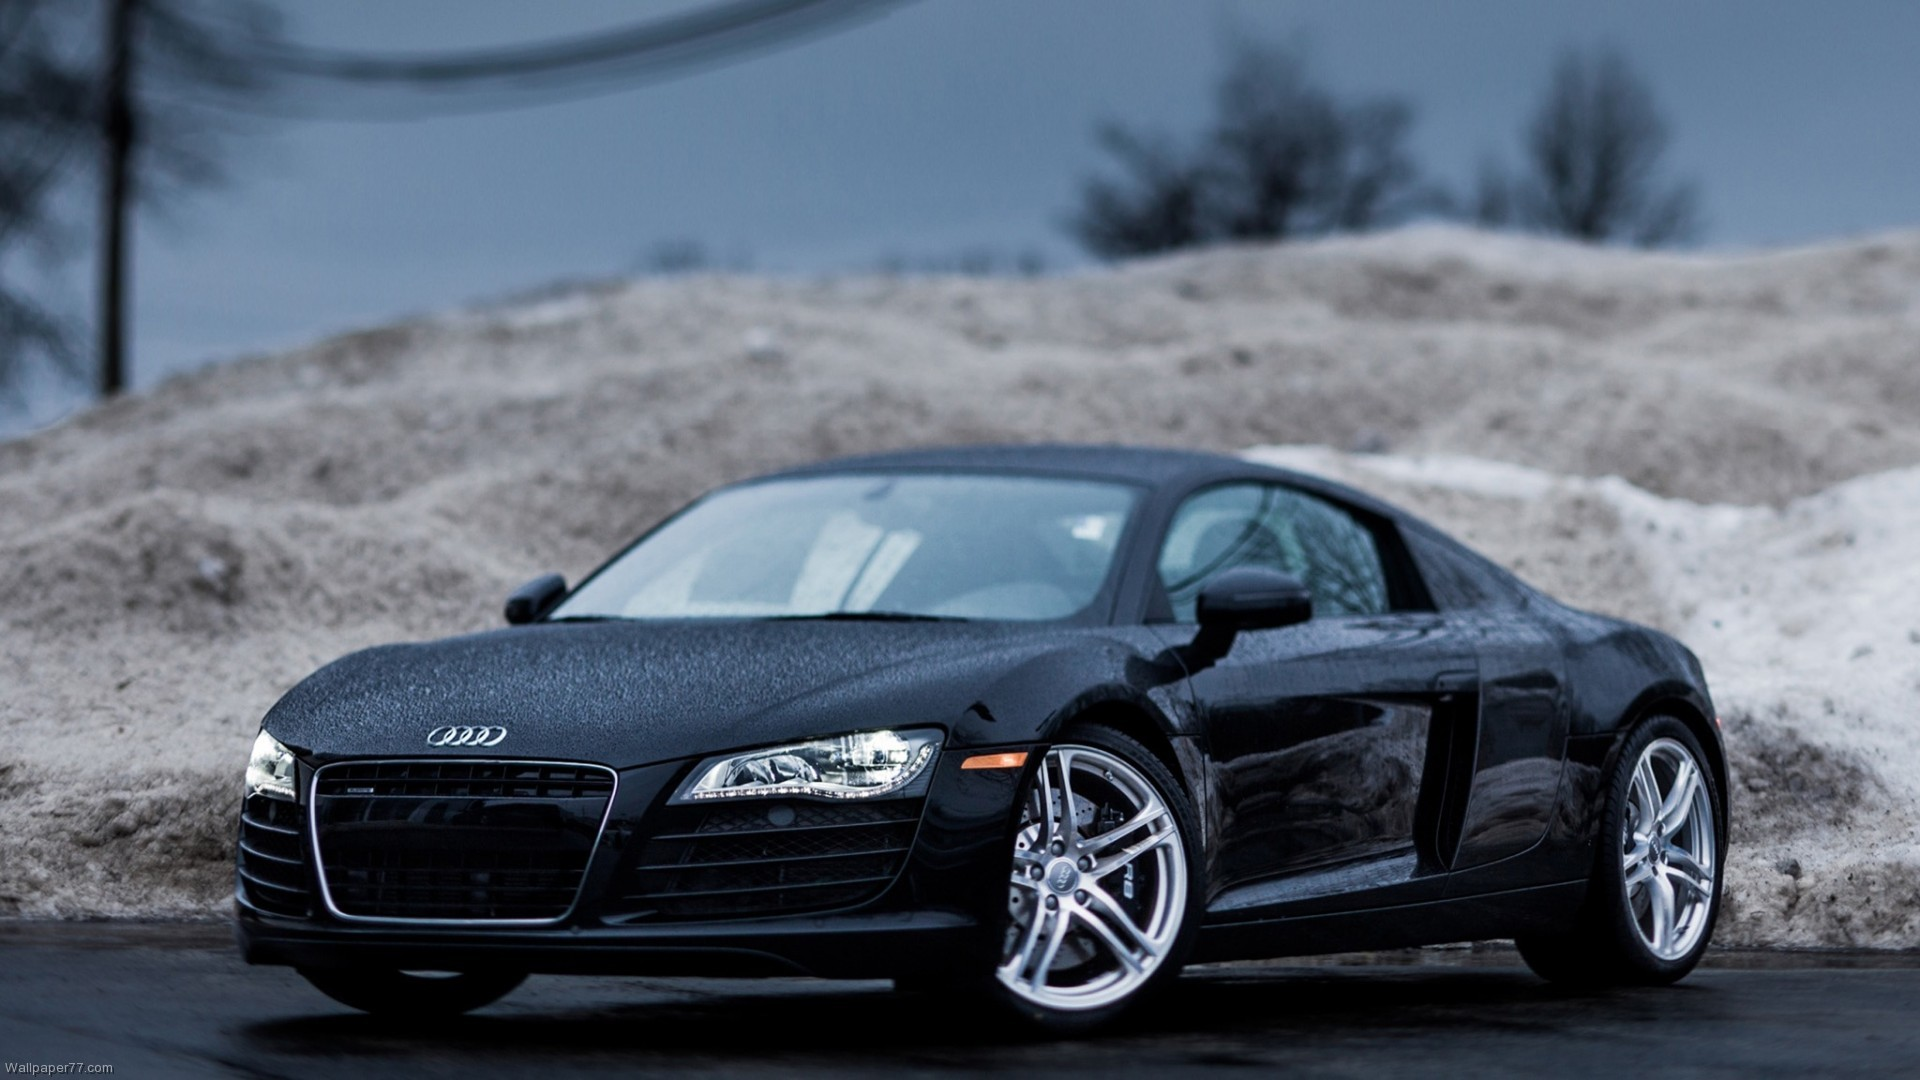 Audi Cars Wallpapers (72+ images)